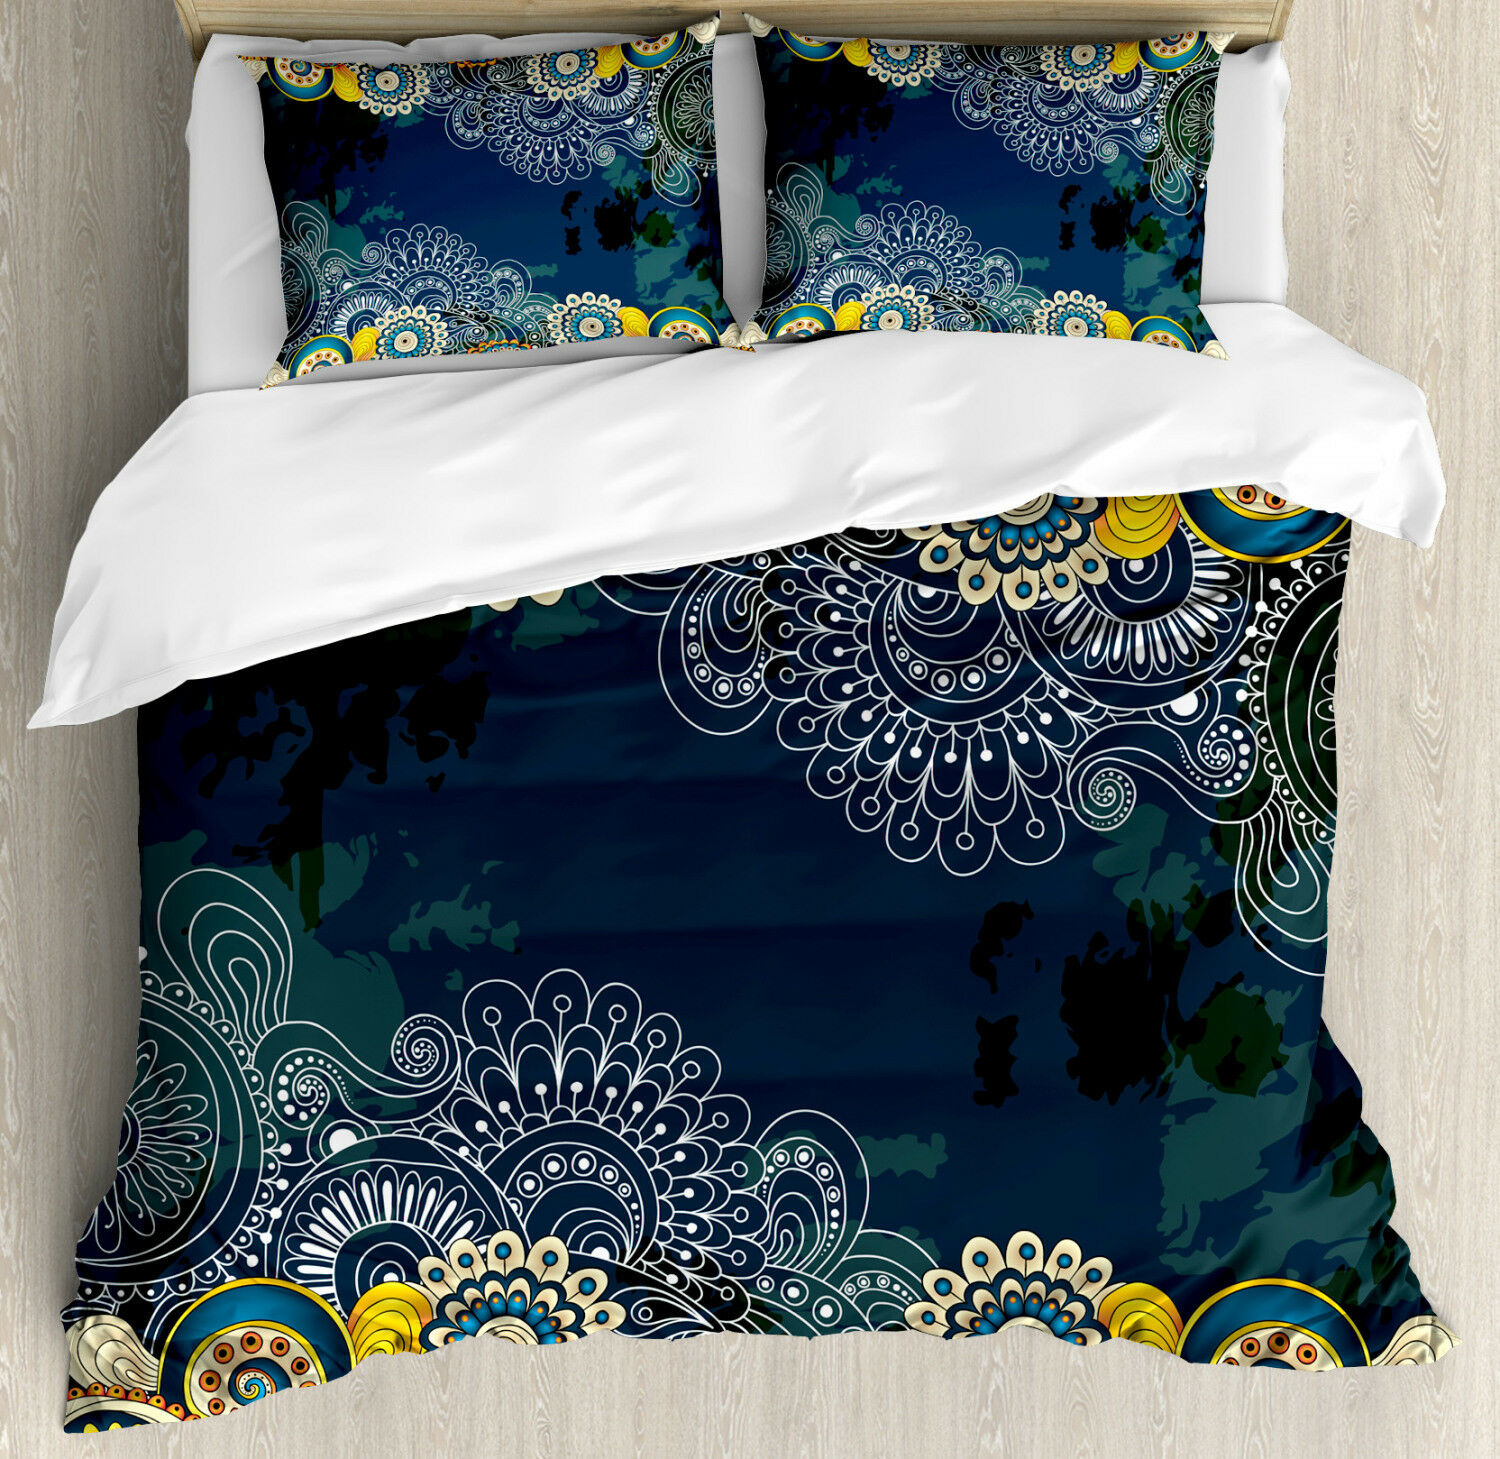 Psychedelic Duvet Cover Set with Pillow Shams Mandala Paisley Print